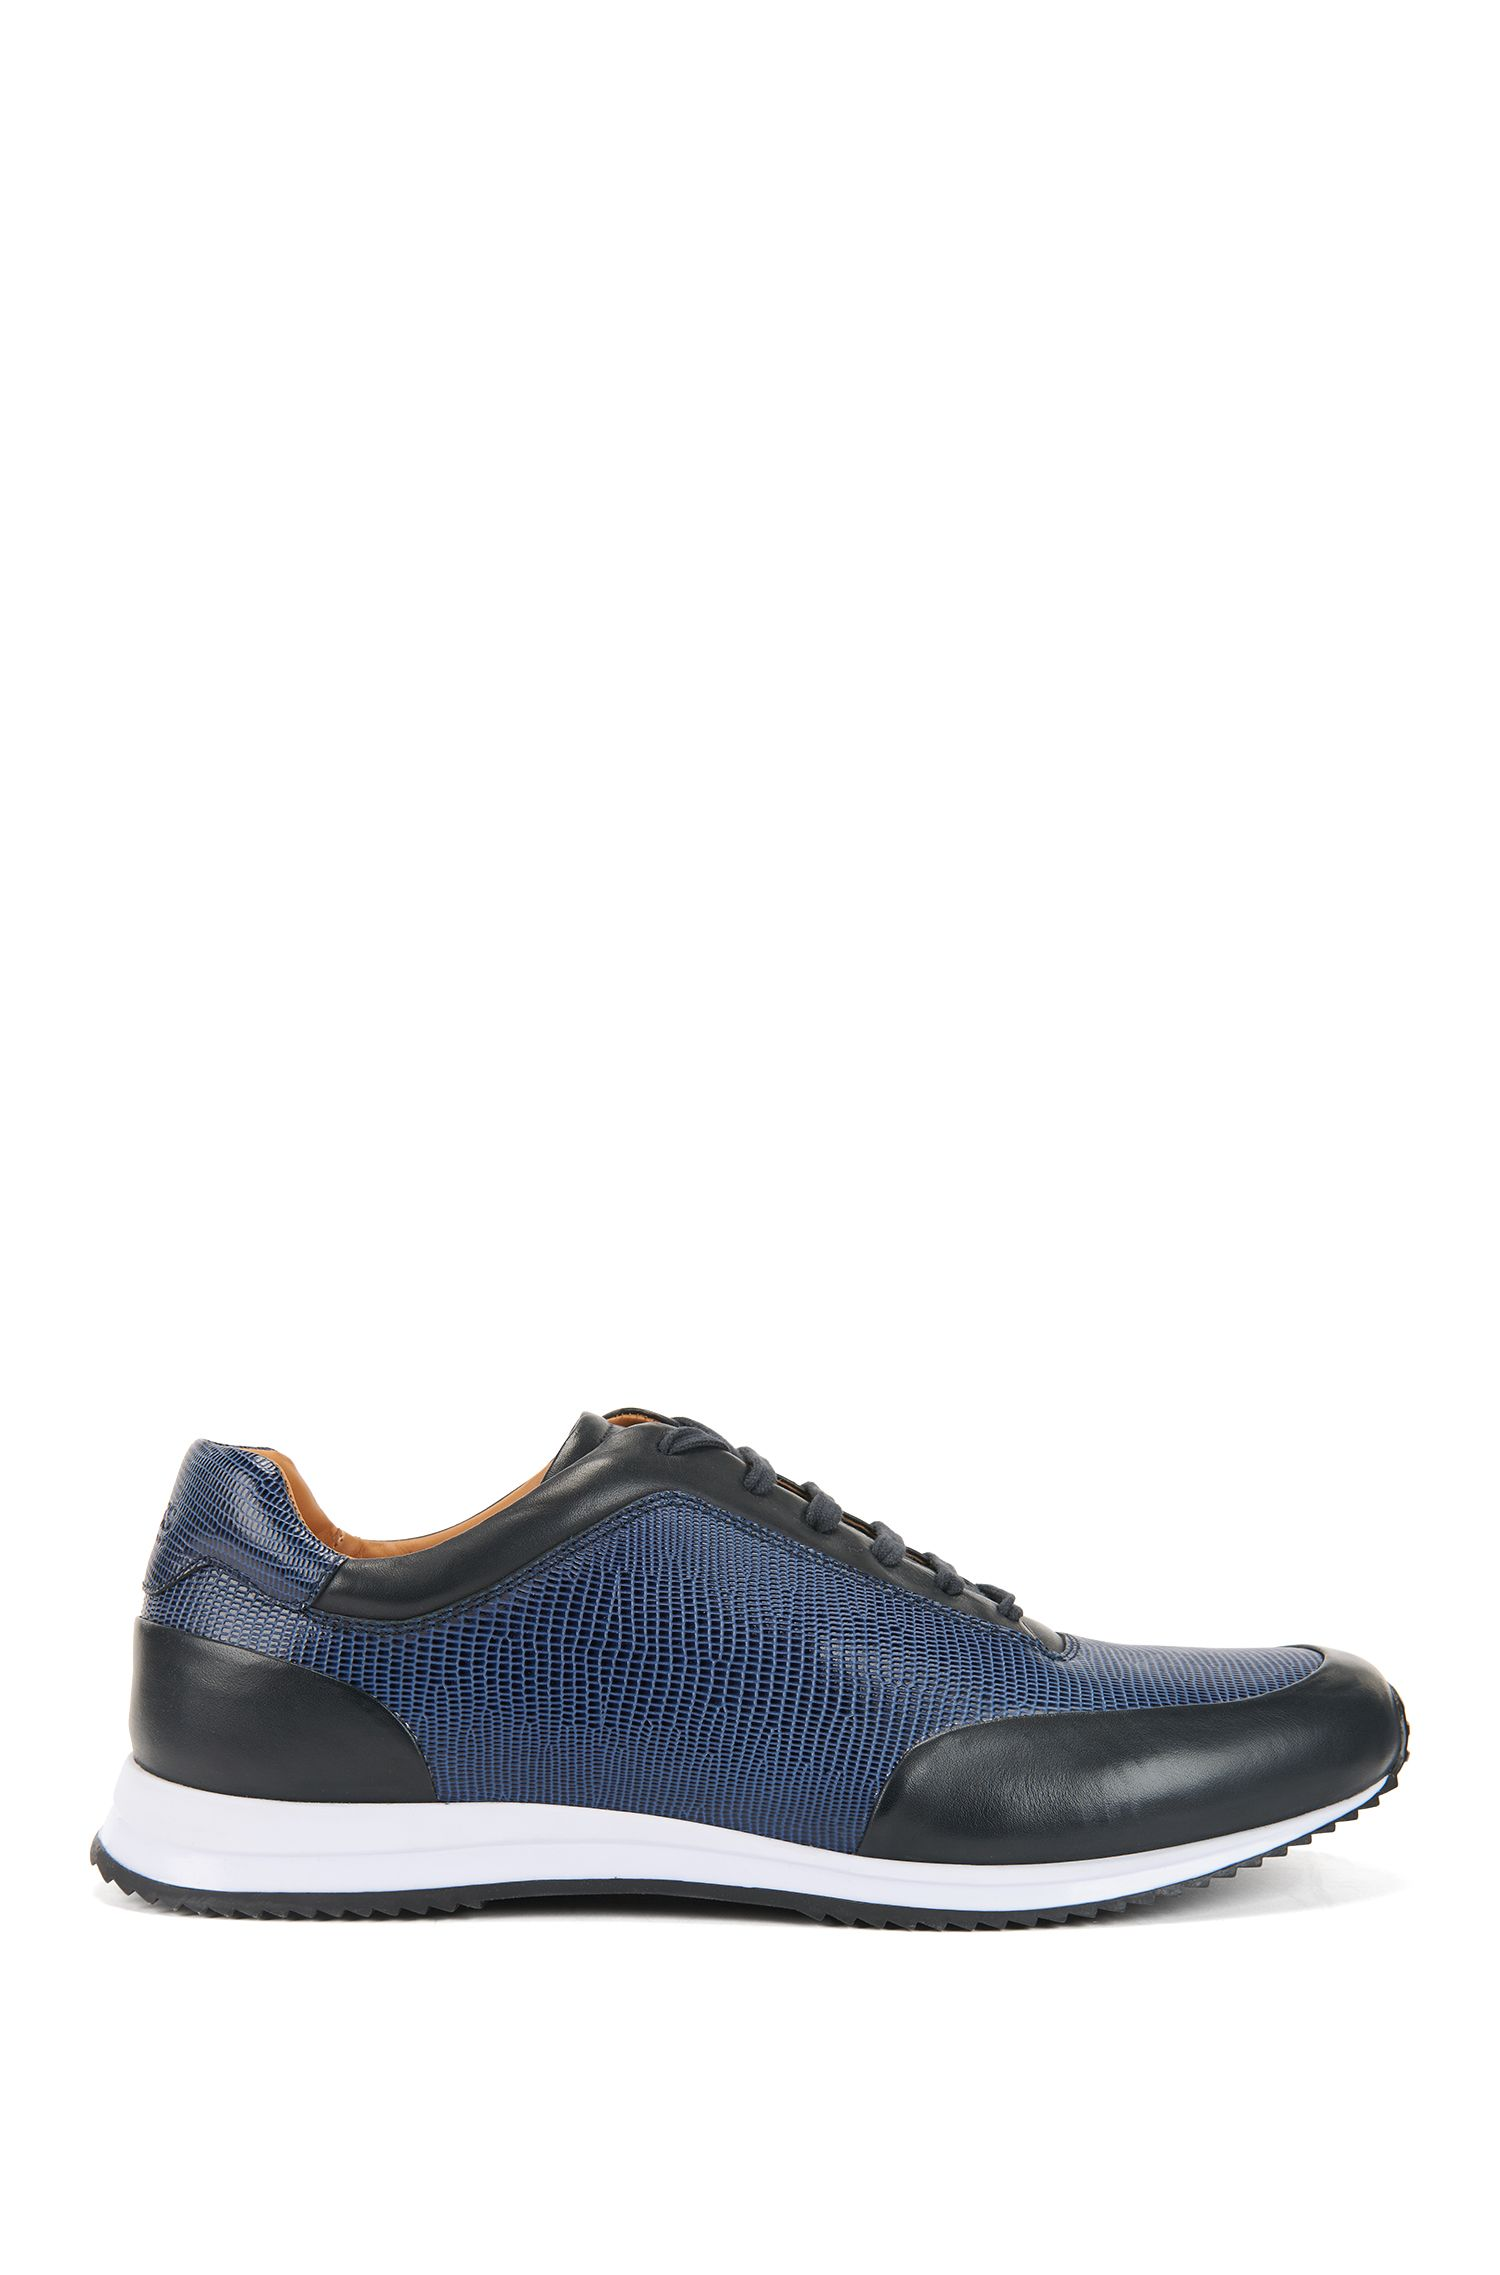 Lace-up sneakers in printed calf leather